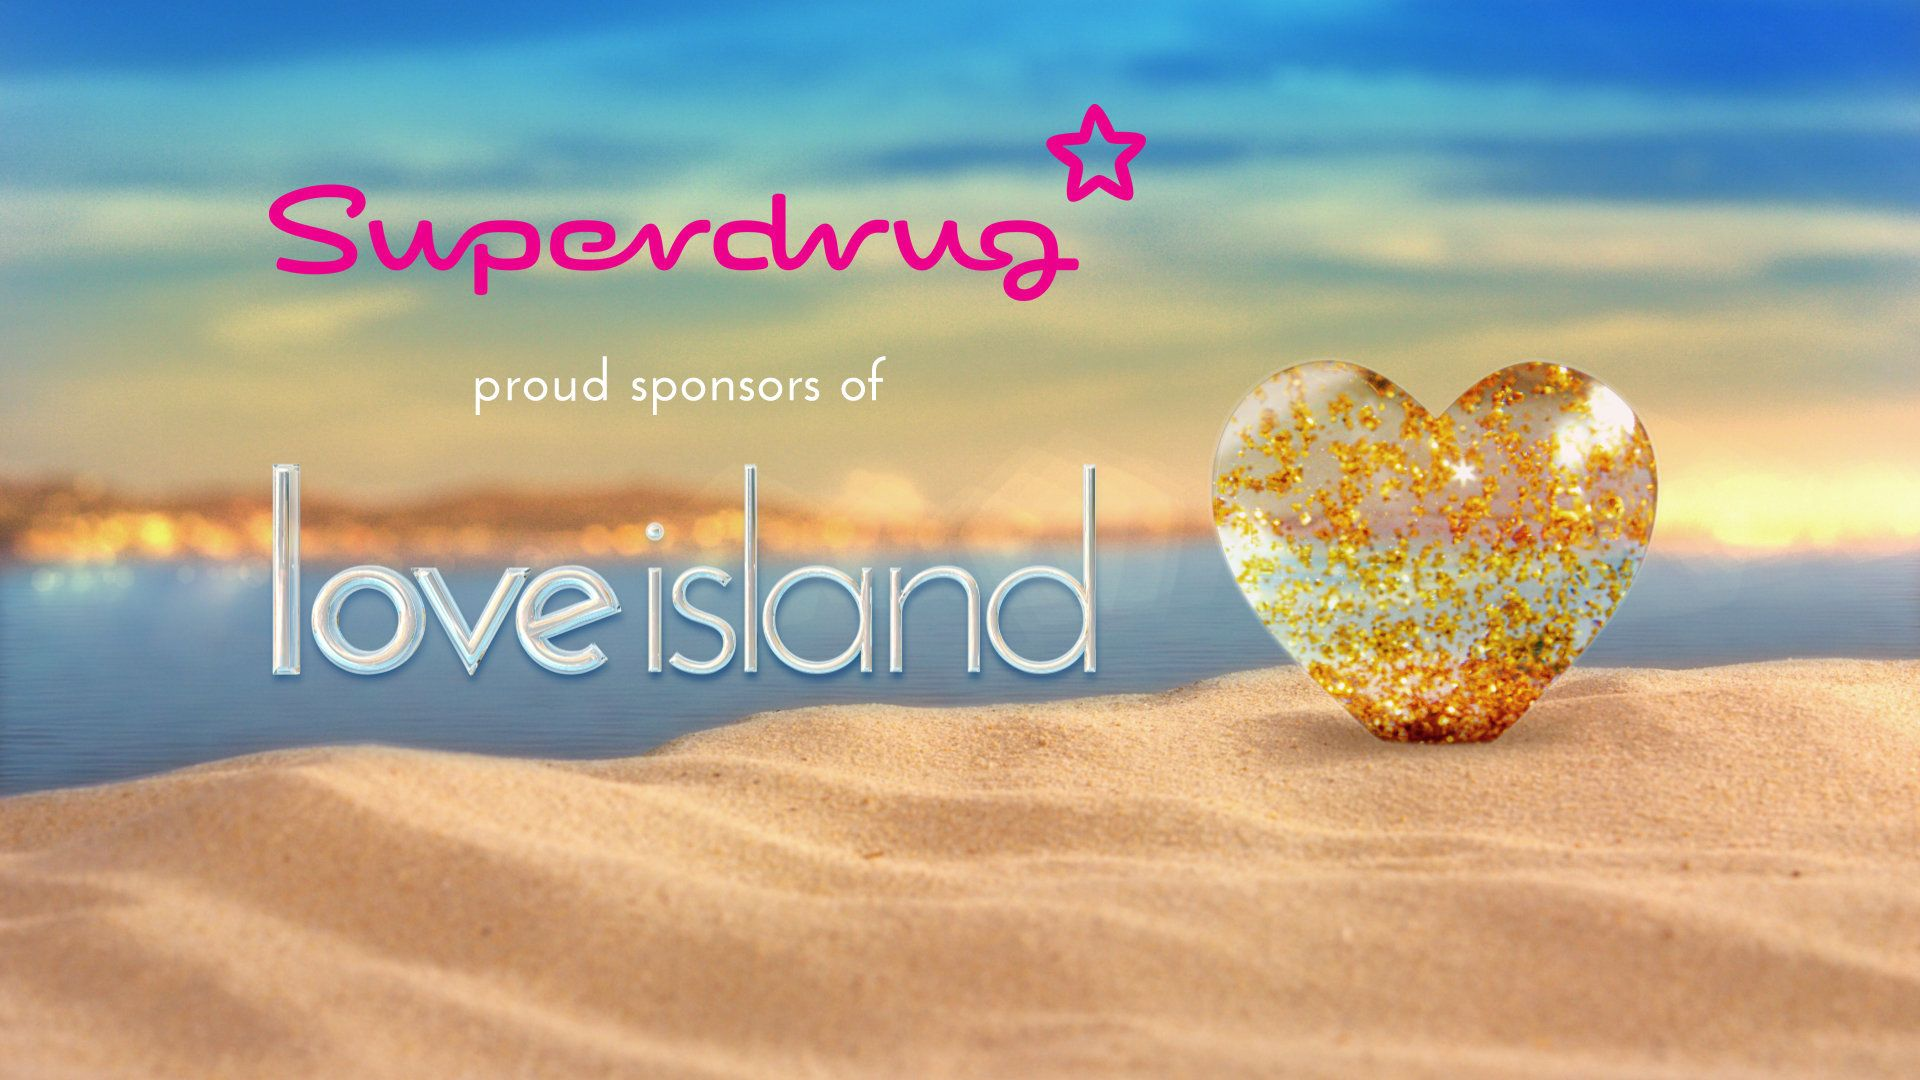 Sorry Love Island Fans, But That Catchy Superdrug Jingle Is No